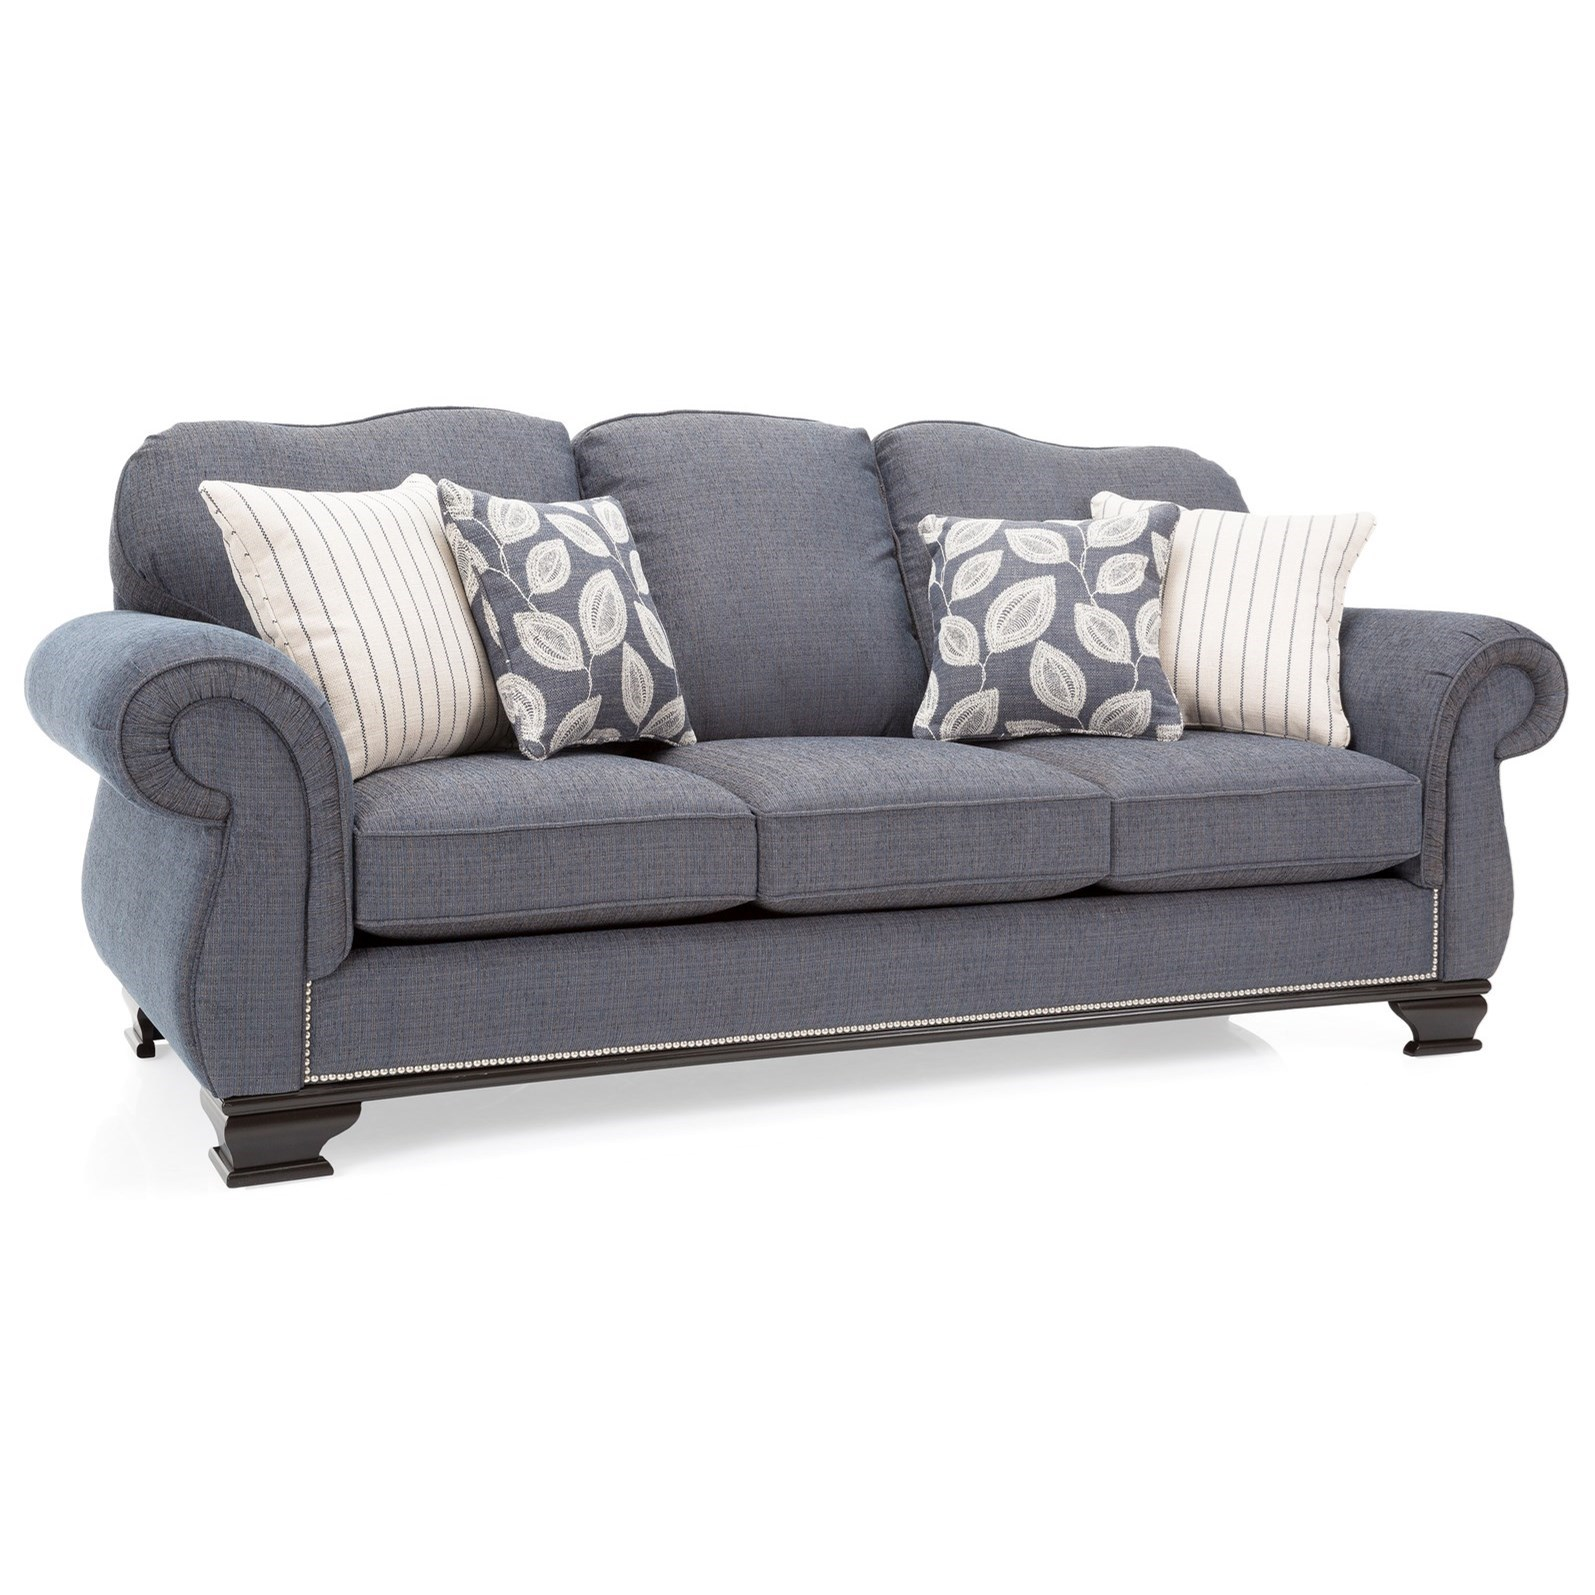 6933 Sofa by Decor-Rest at Johnny Janosik